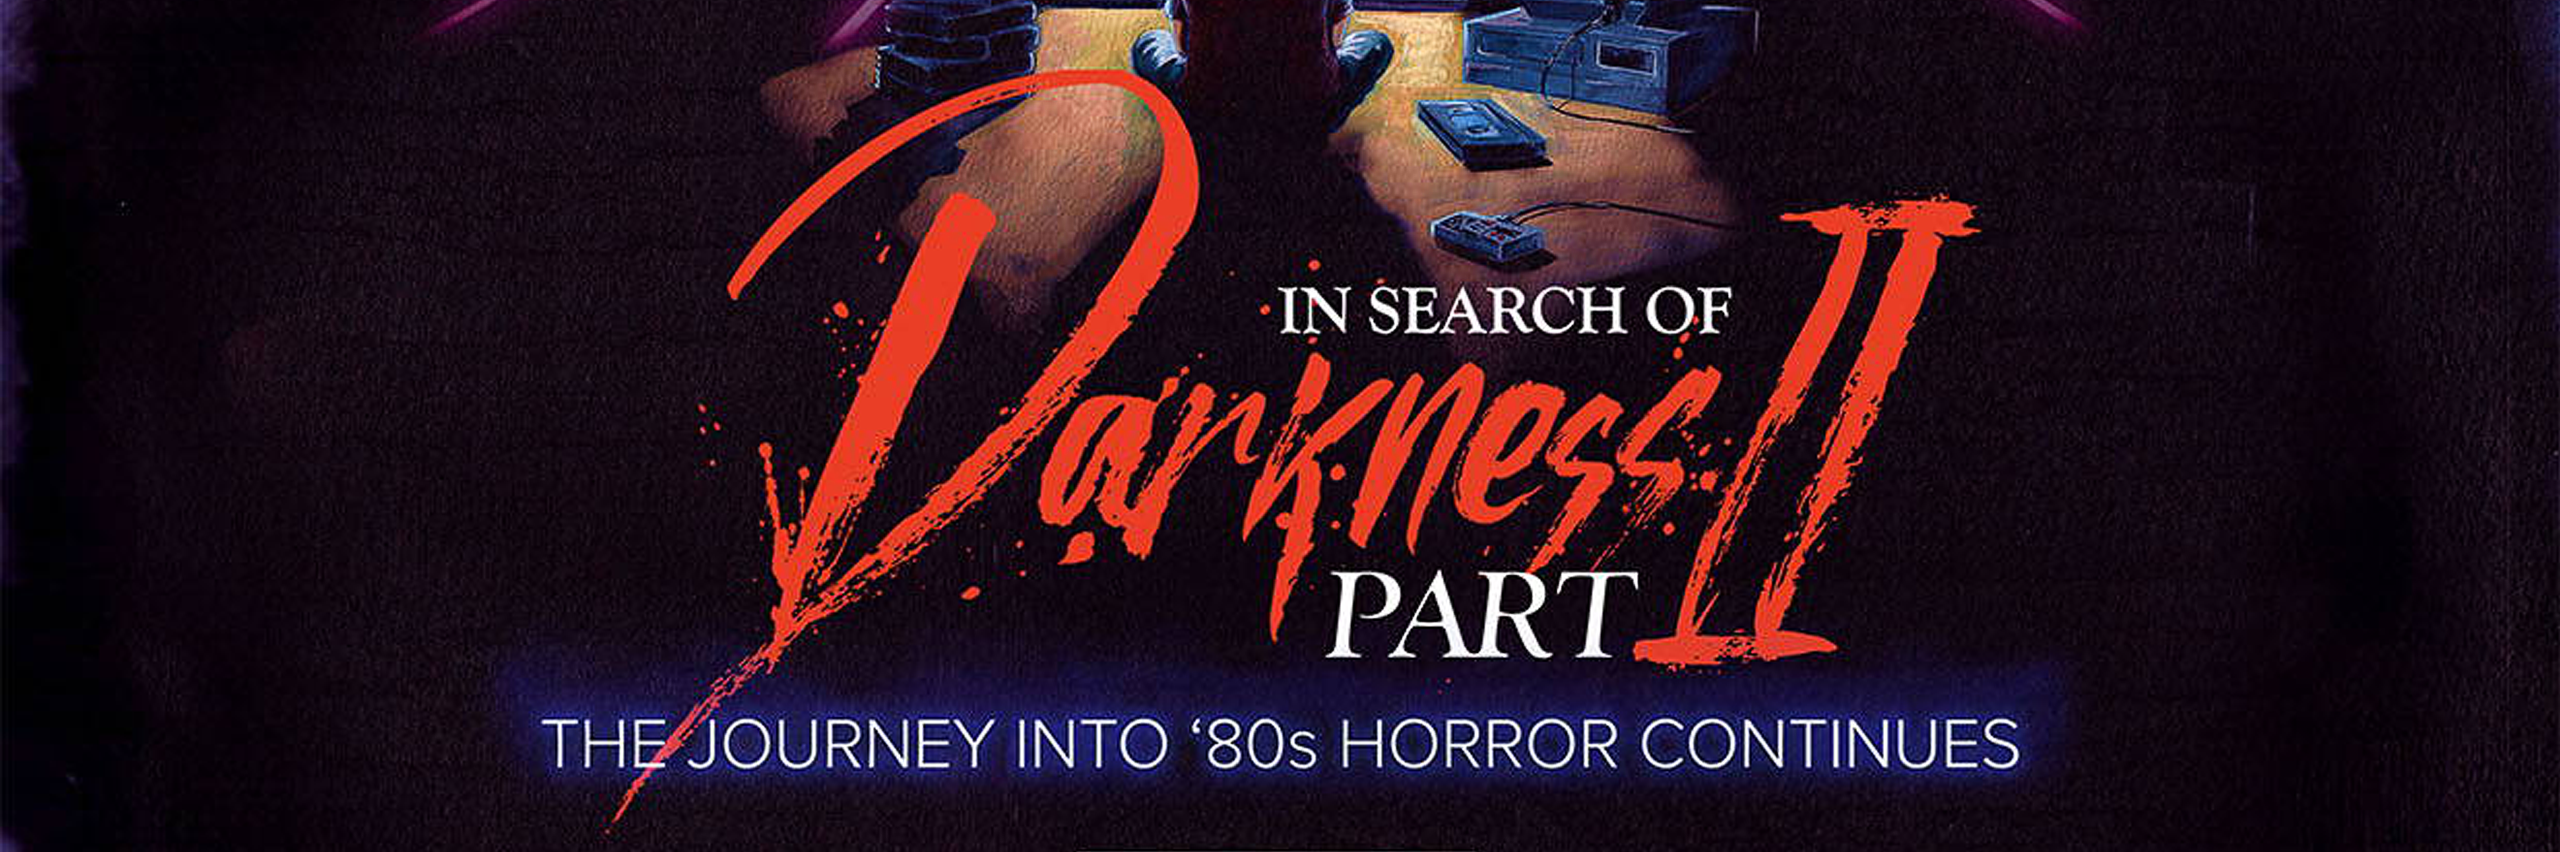 In Search of Darkness: Part II (2020) — arvostelu